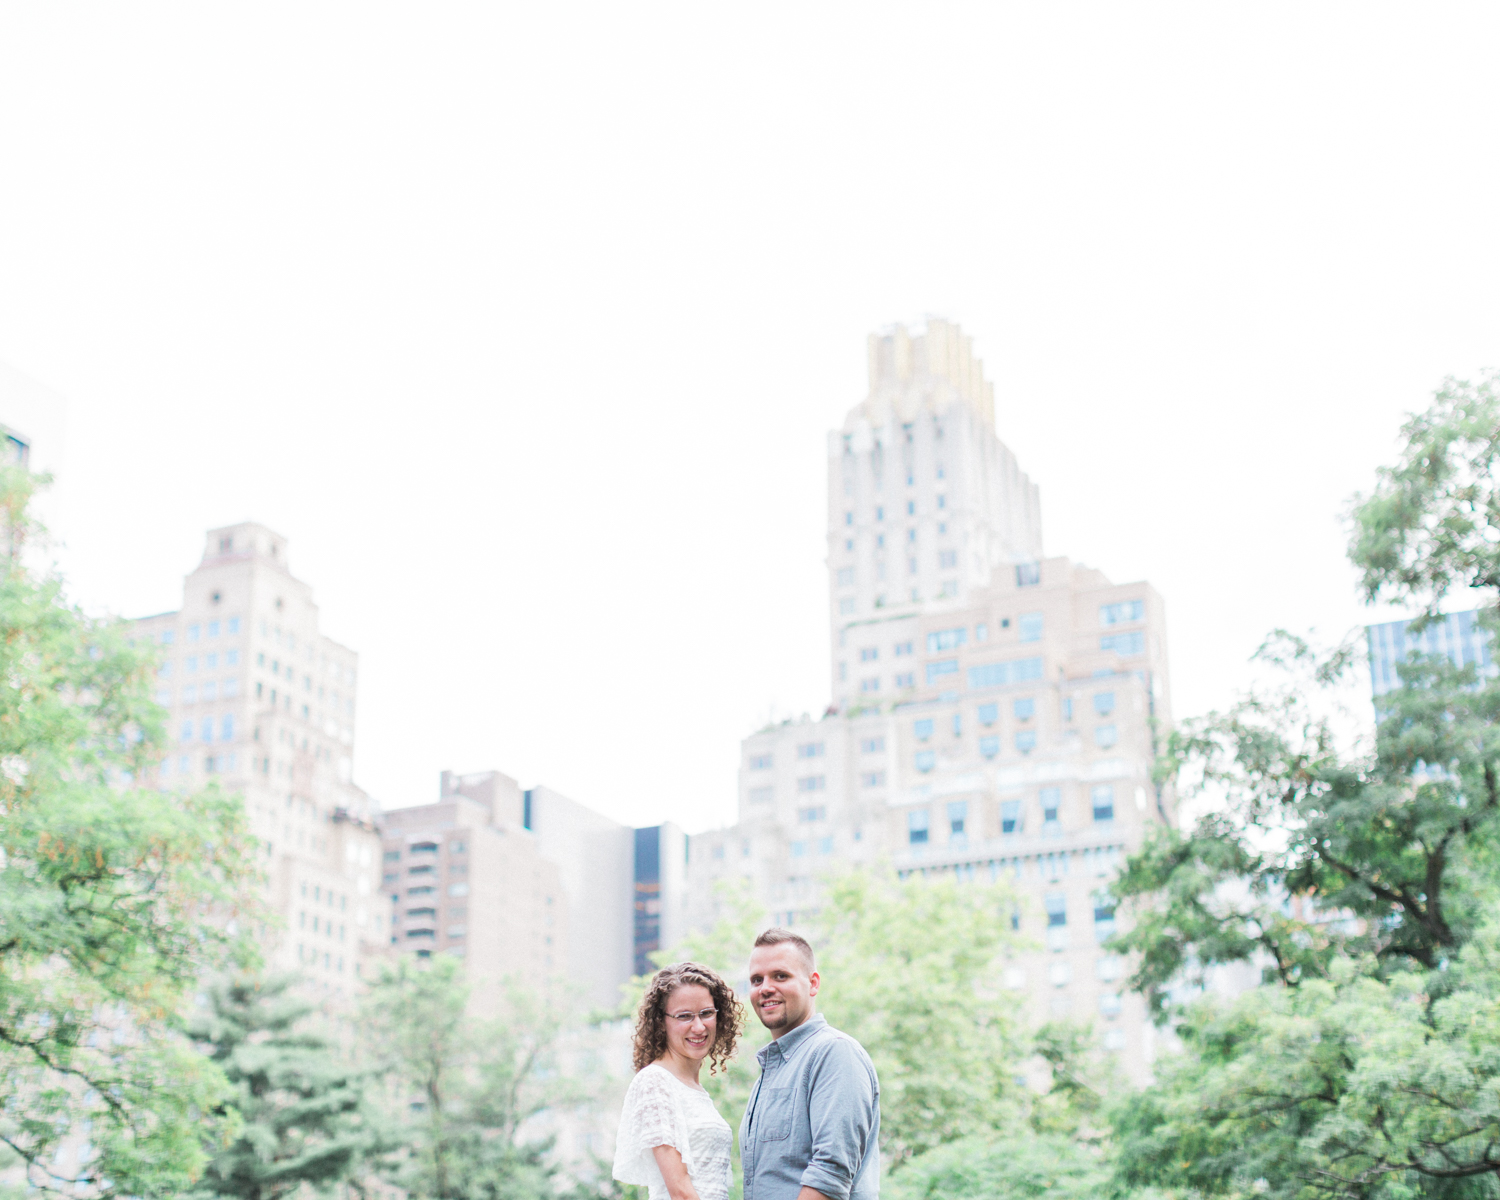 Calgary-Engagement-Photograoher-central-park-session-nyc-9.jpg